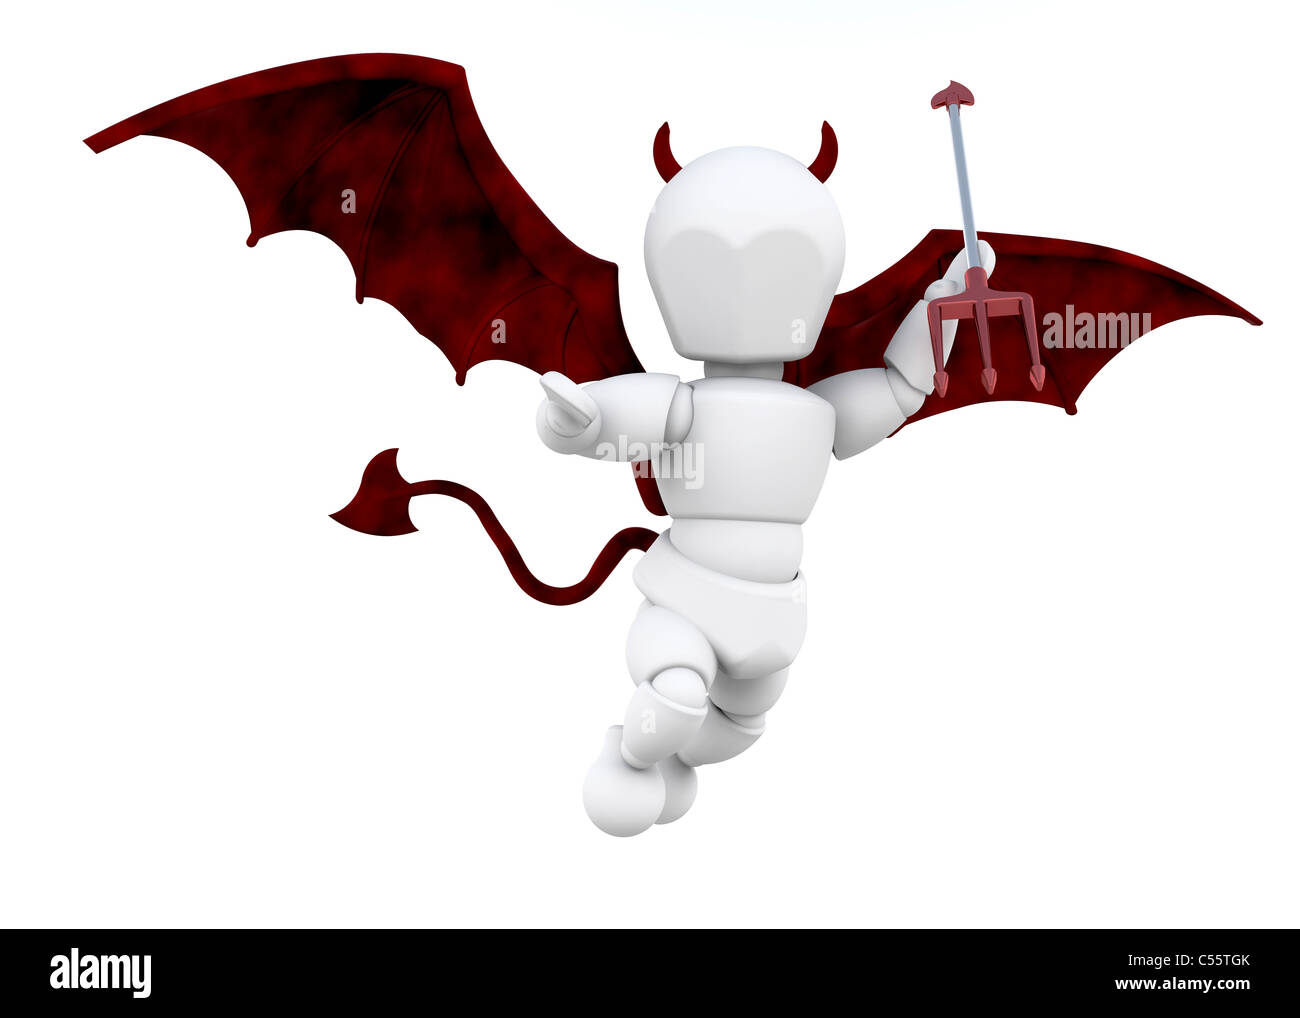 3d Monster Stock Photos & 3d Monster Stock Images - Page 3 - Alamy